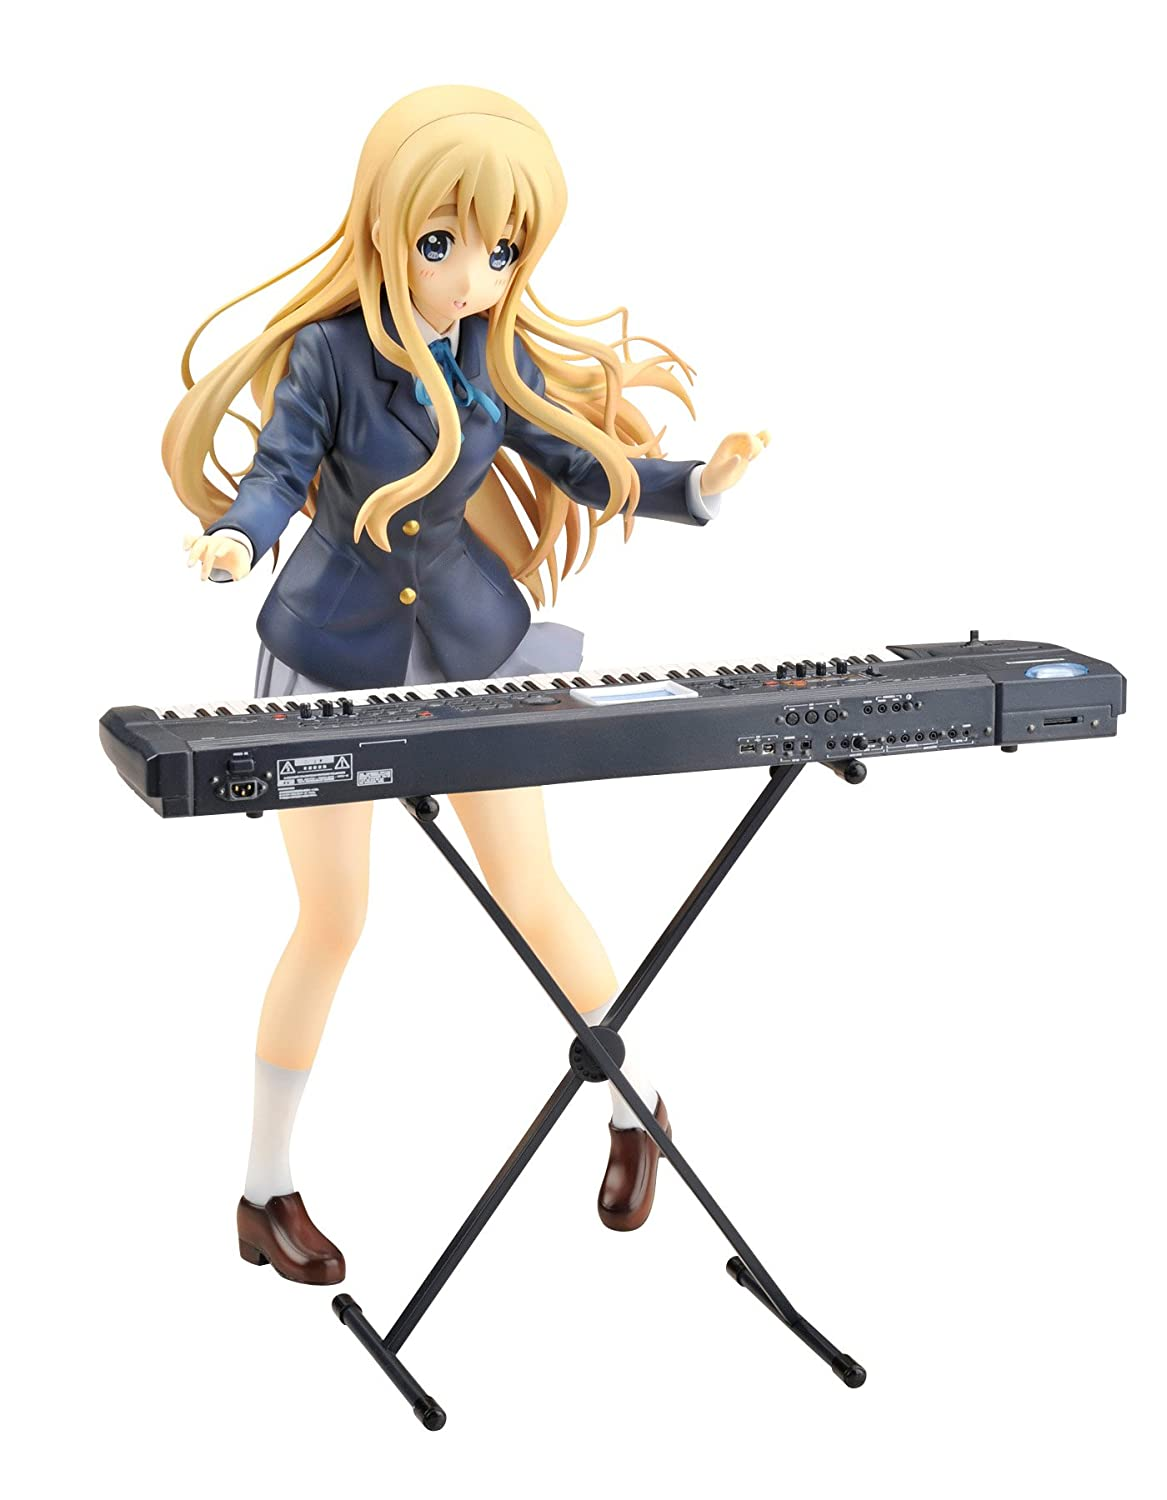 K-ON - Tsumugi Kotobuki 1/8 Scale Scale Scale Figure (japan import) b116ed